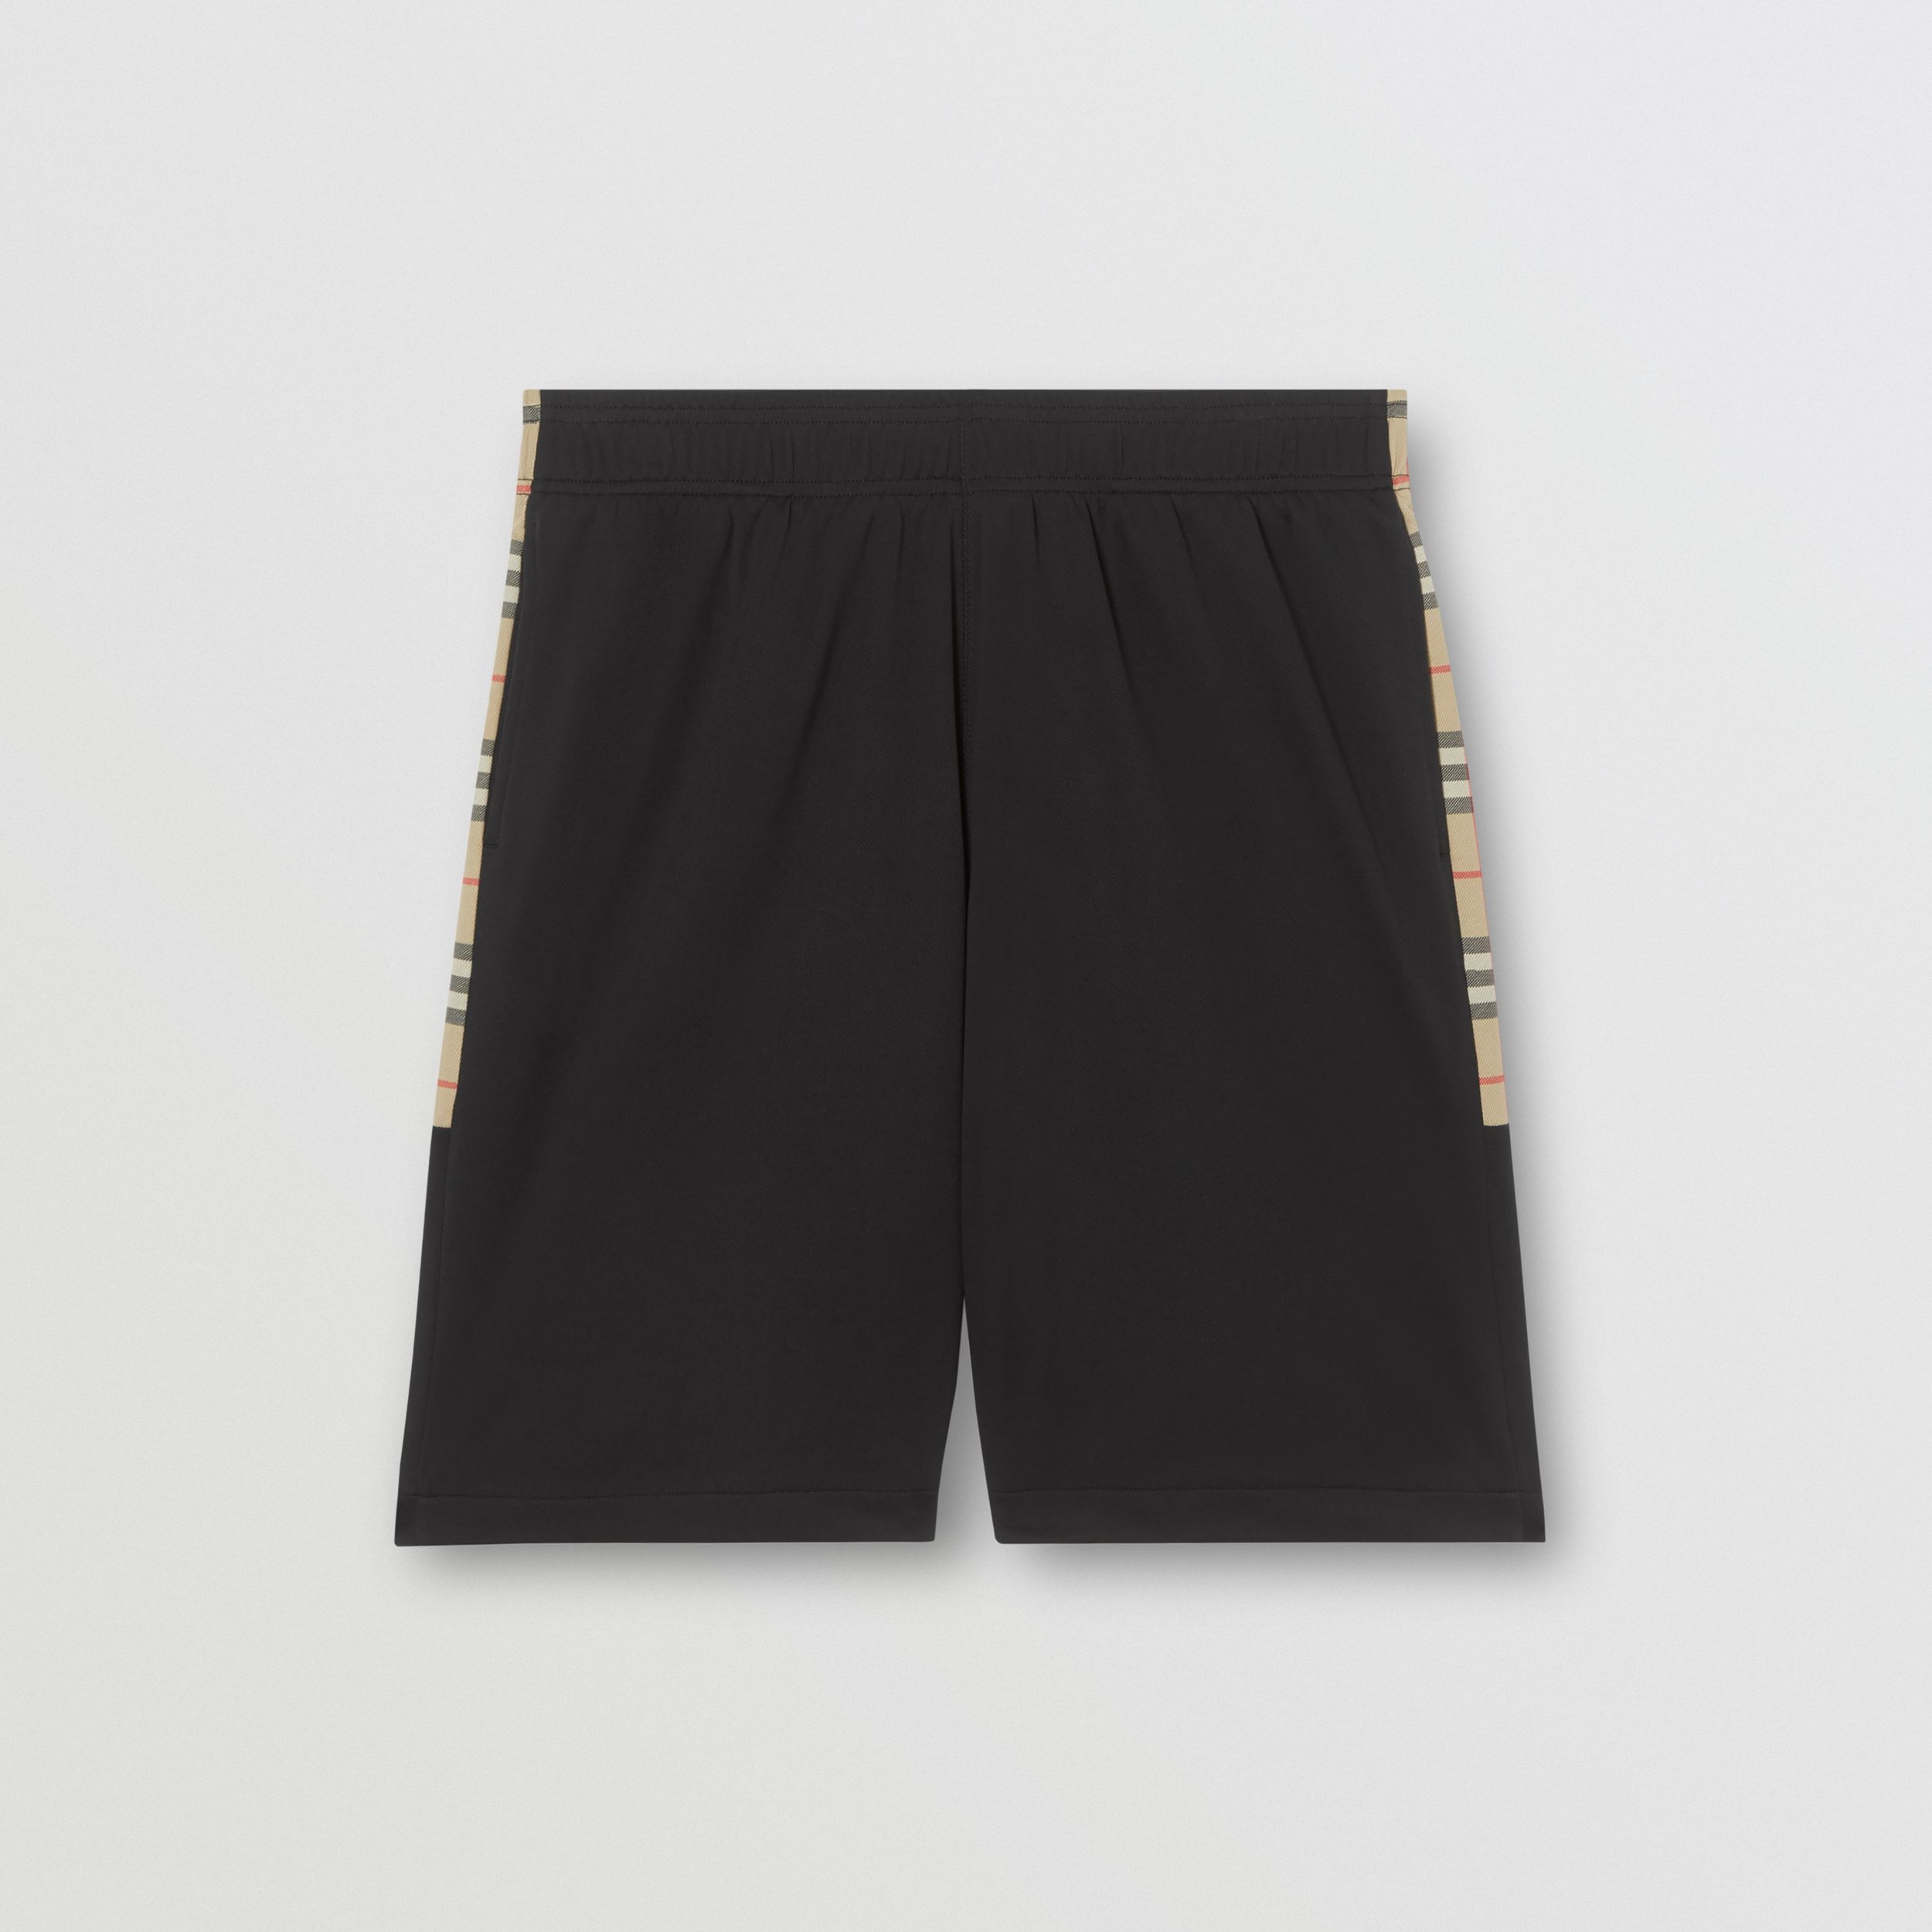 Vintage Check Trim Technical Twill Shorts in Black - Men | Burberry - 4